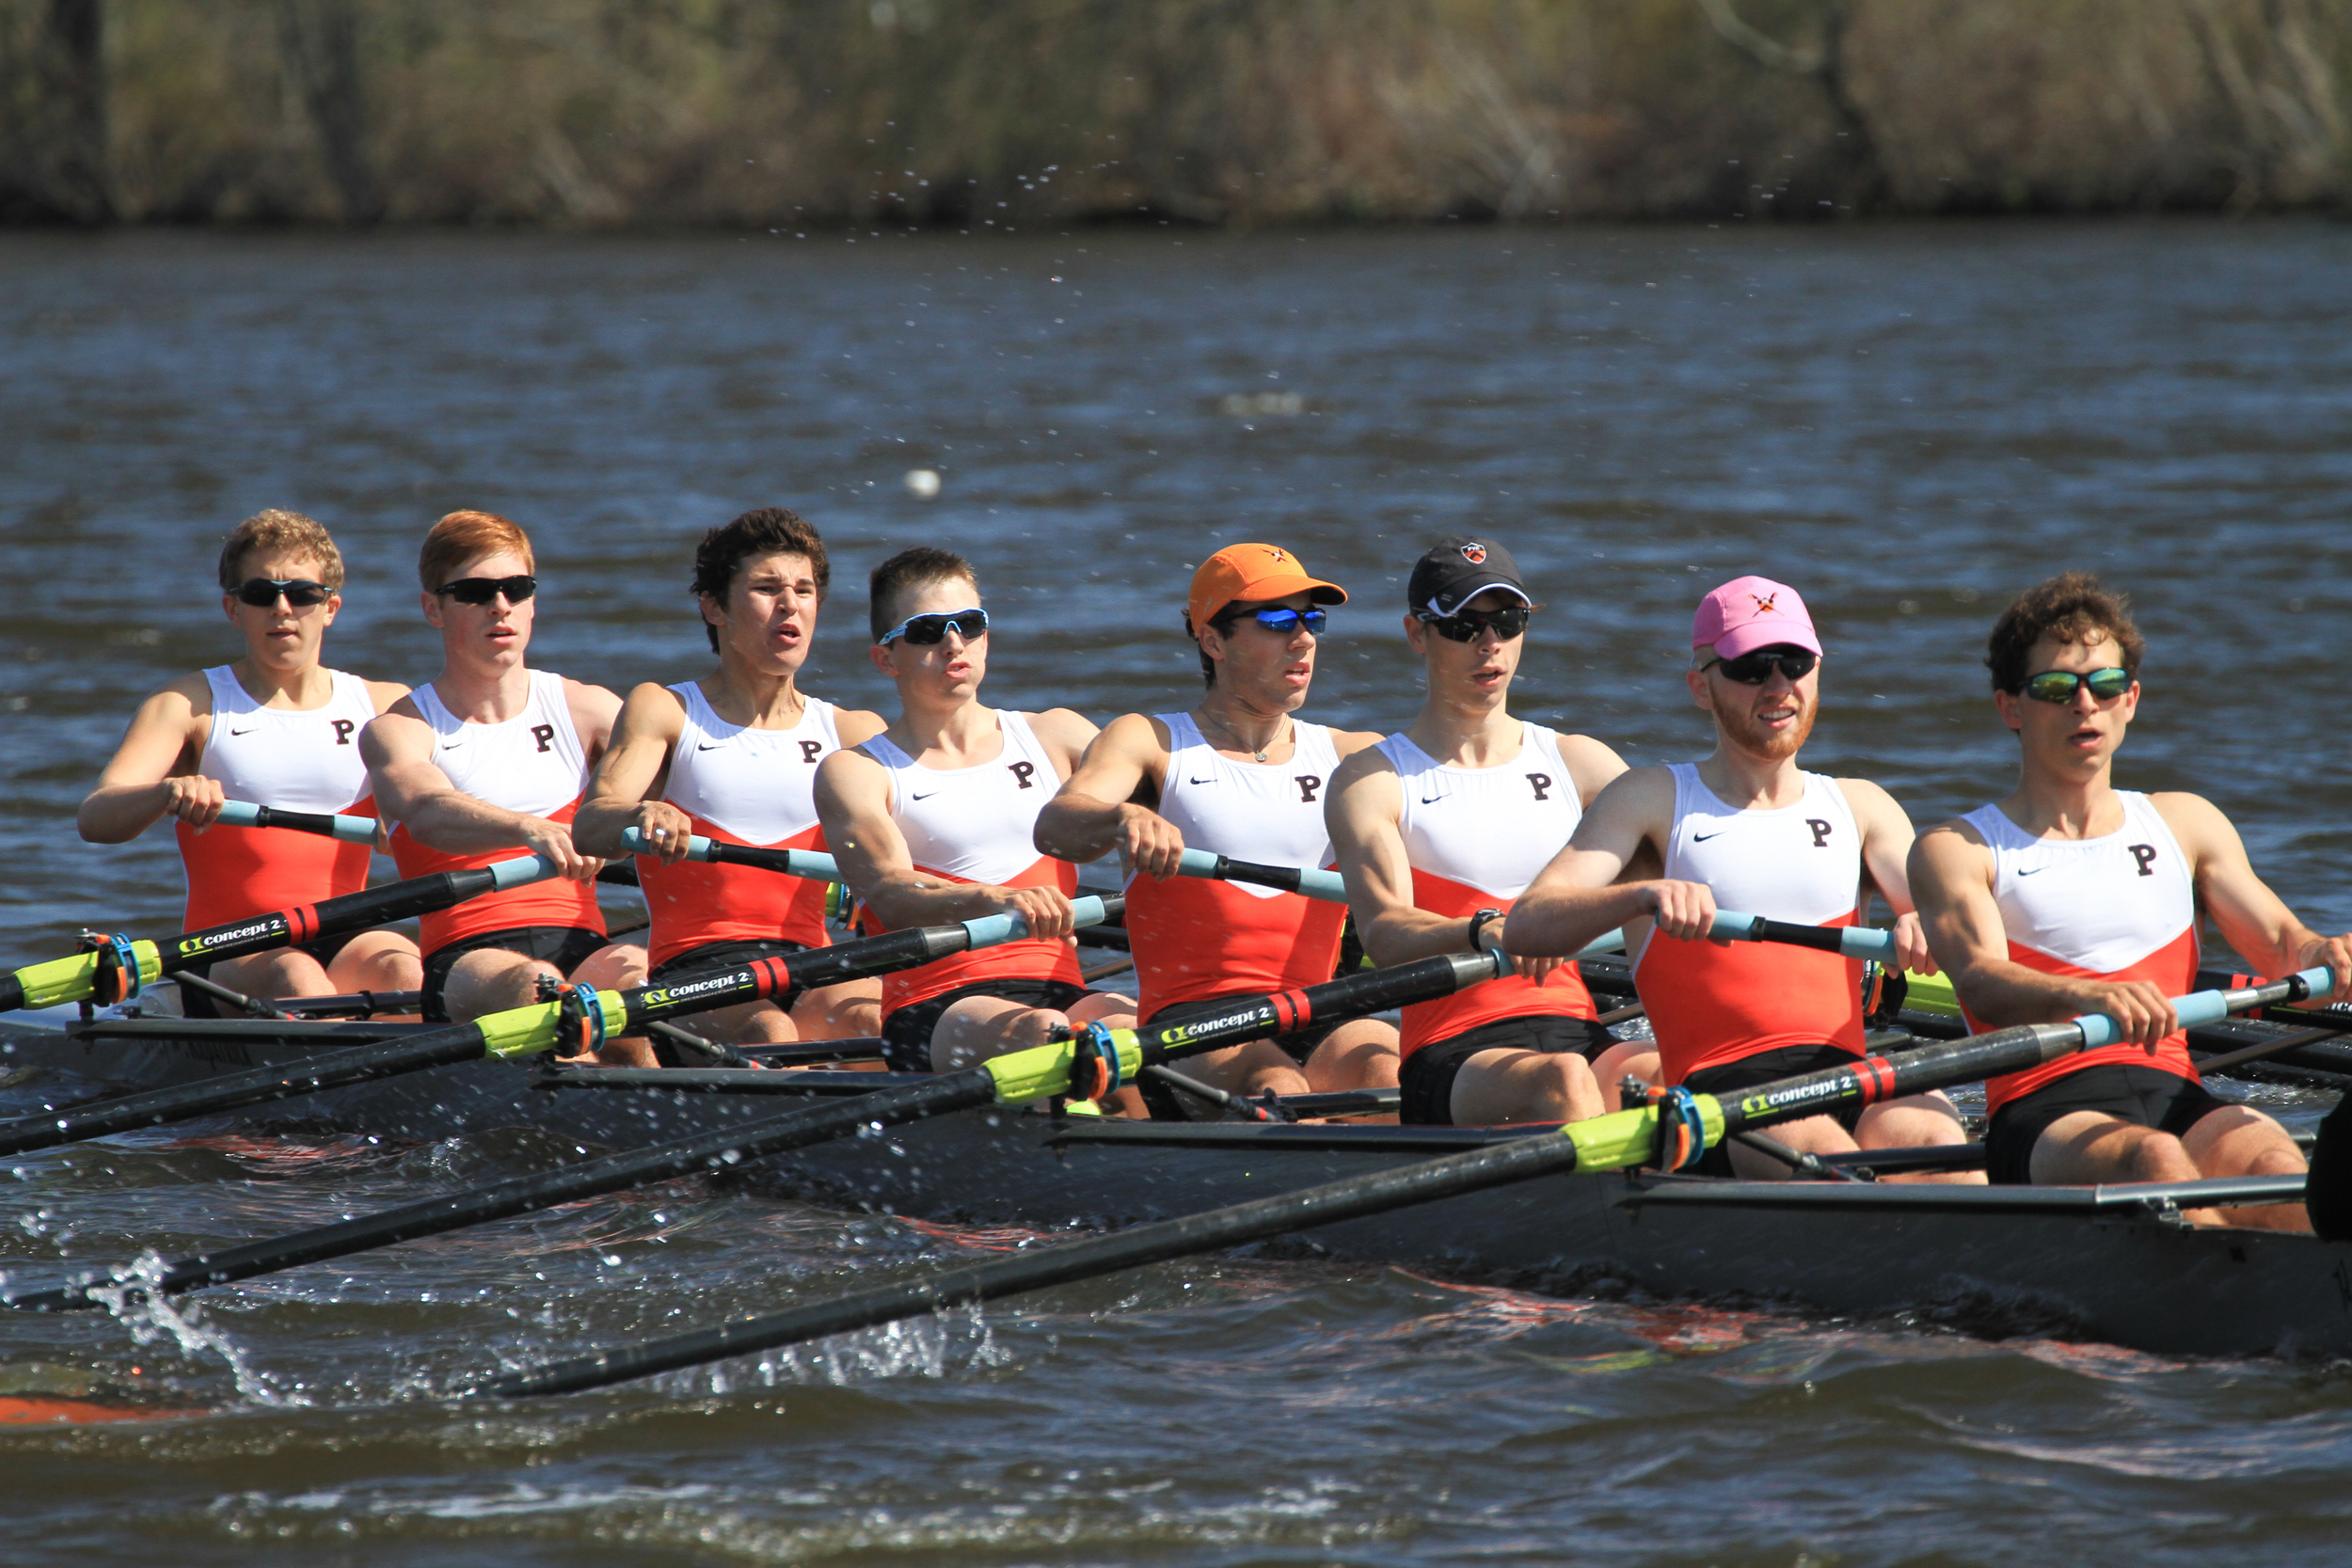 The lightweight men's 3V races to victory over Georgetown and Penn